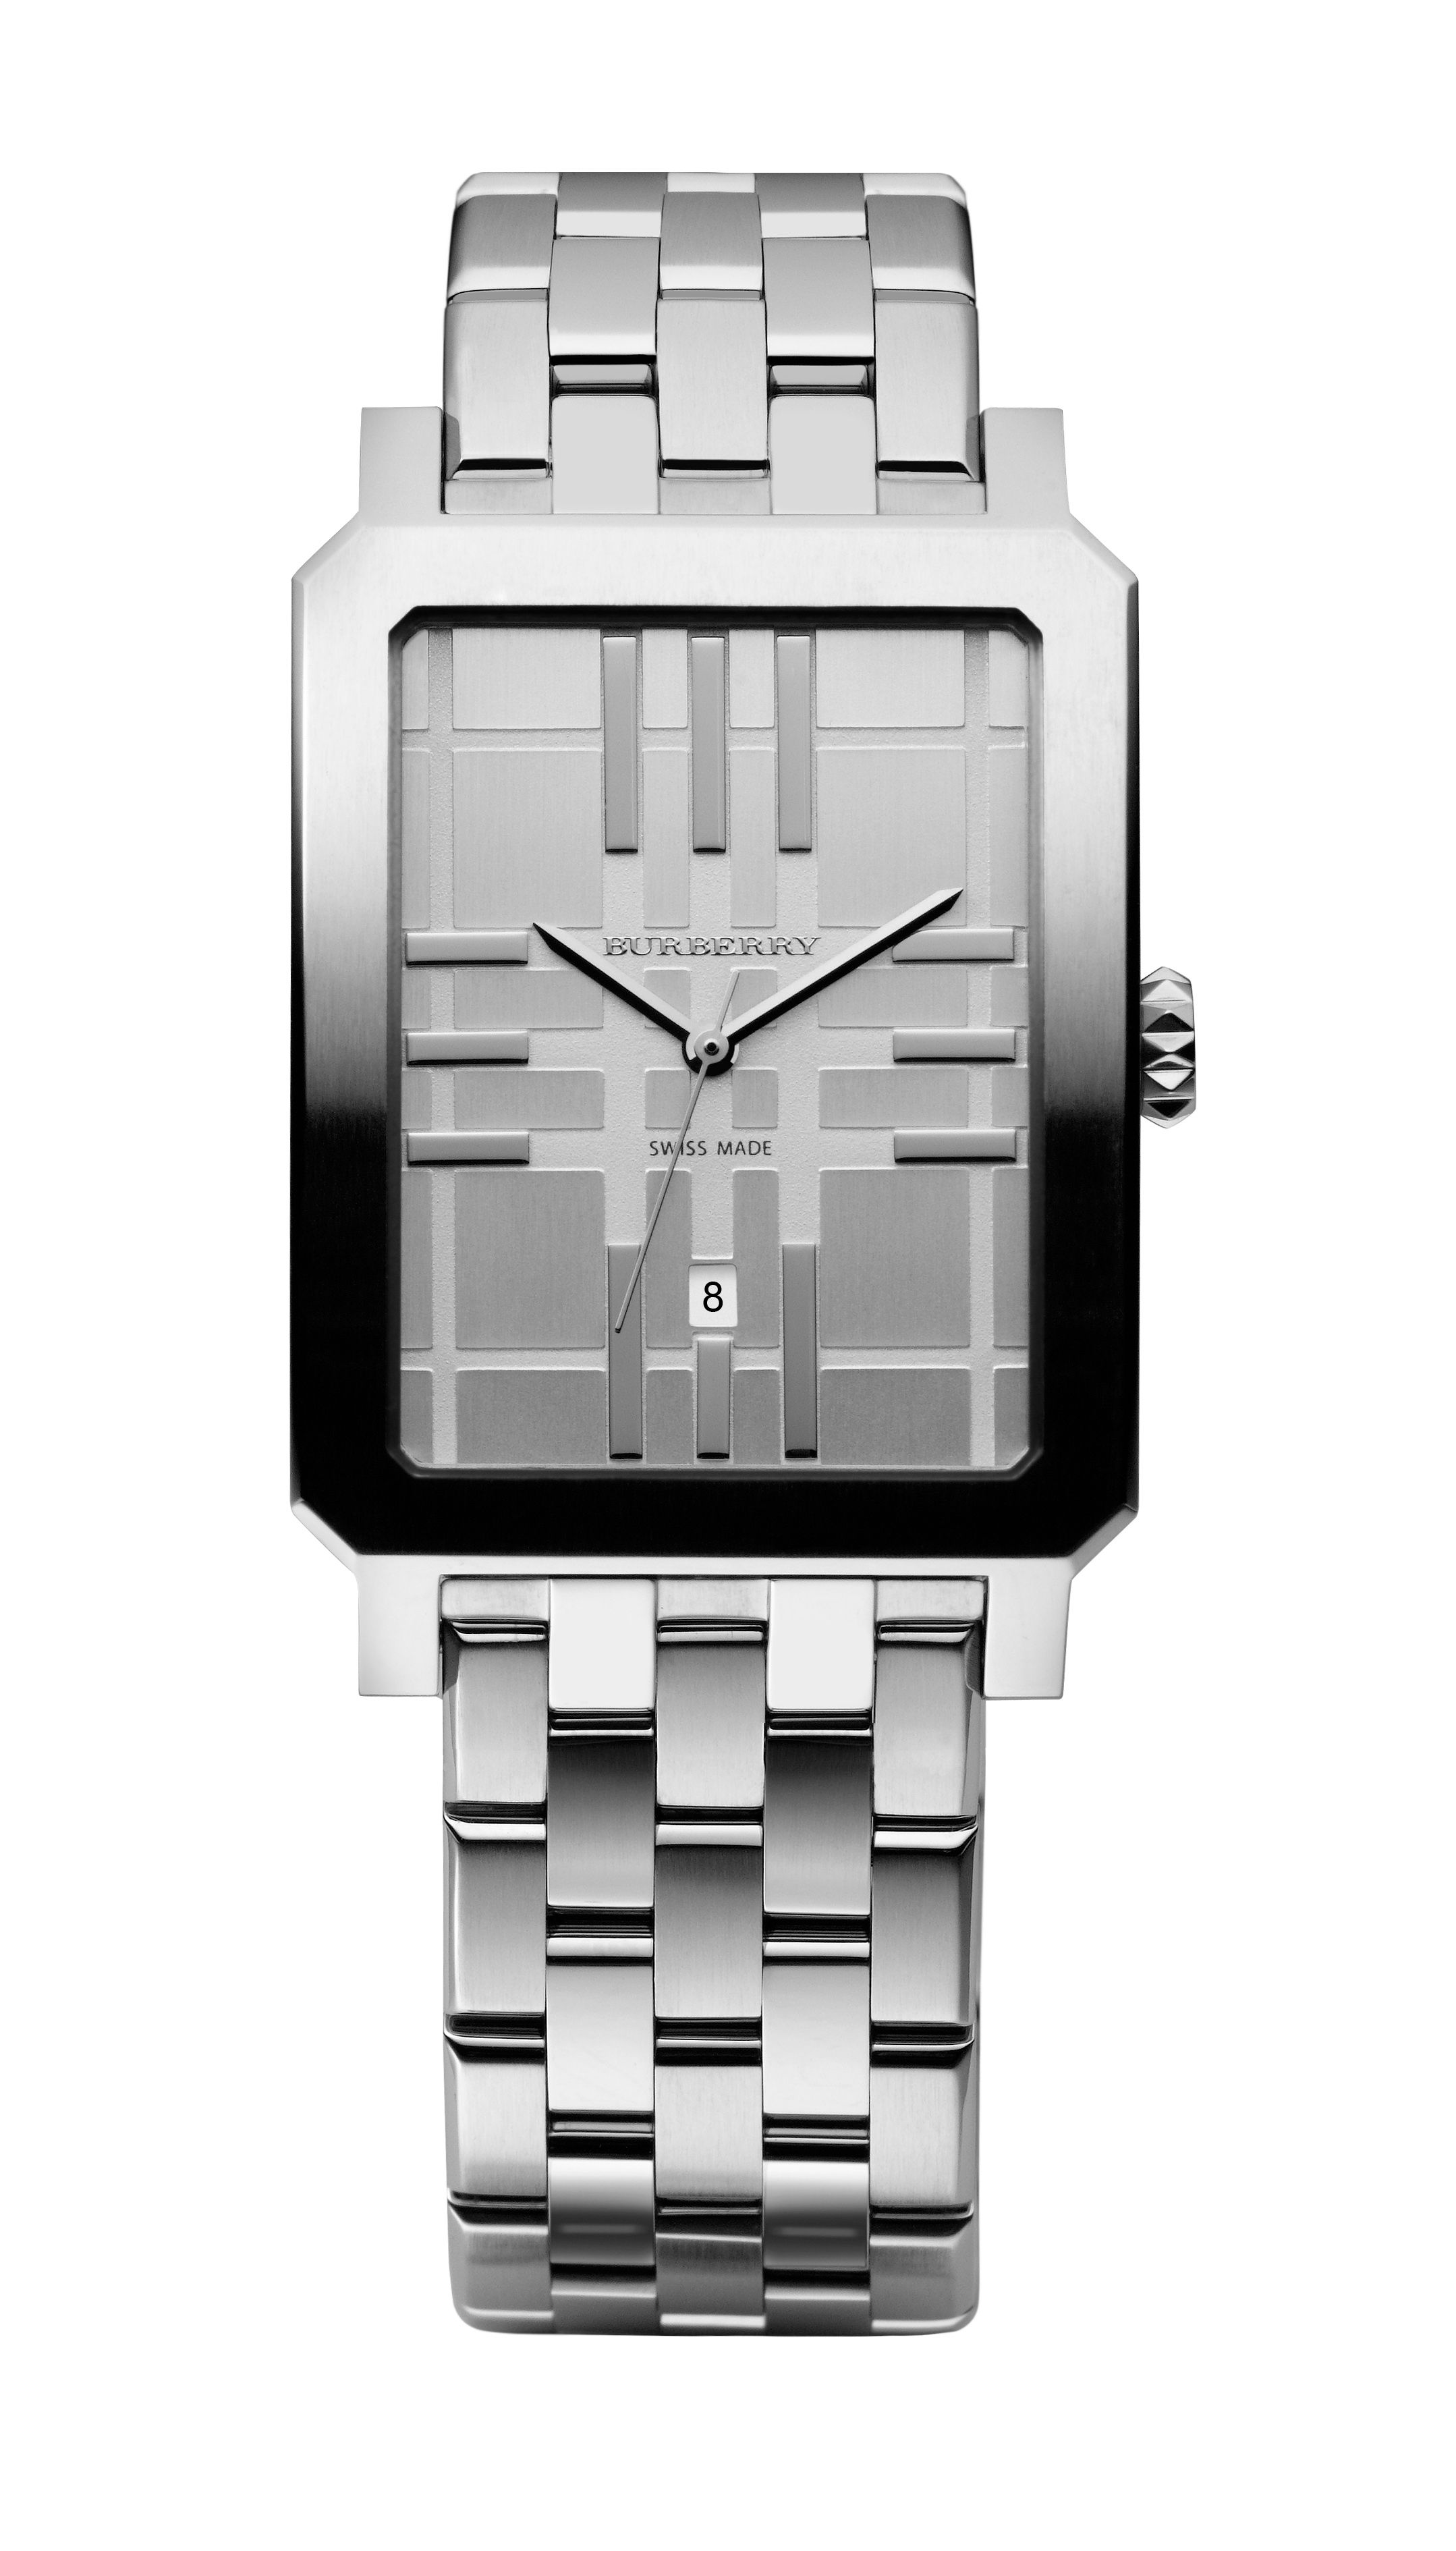 Silver dial watch